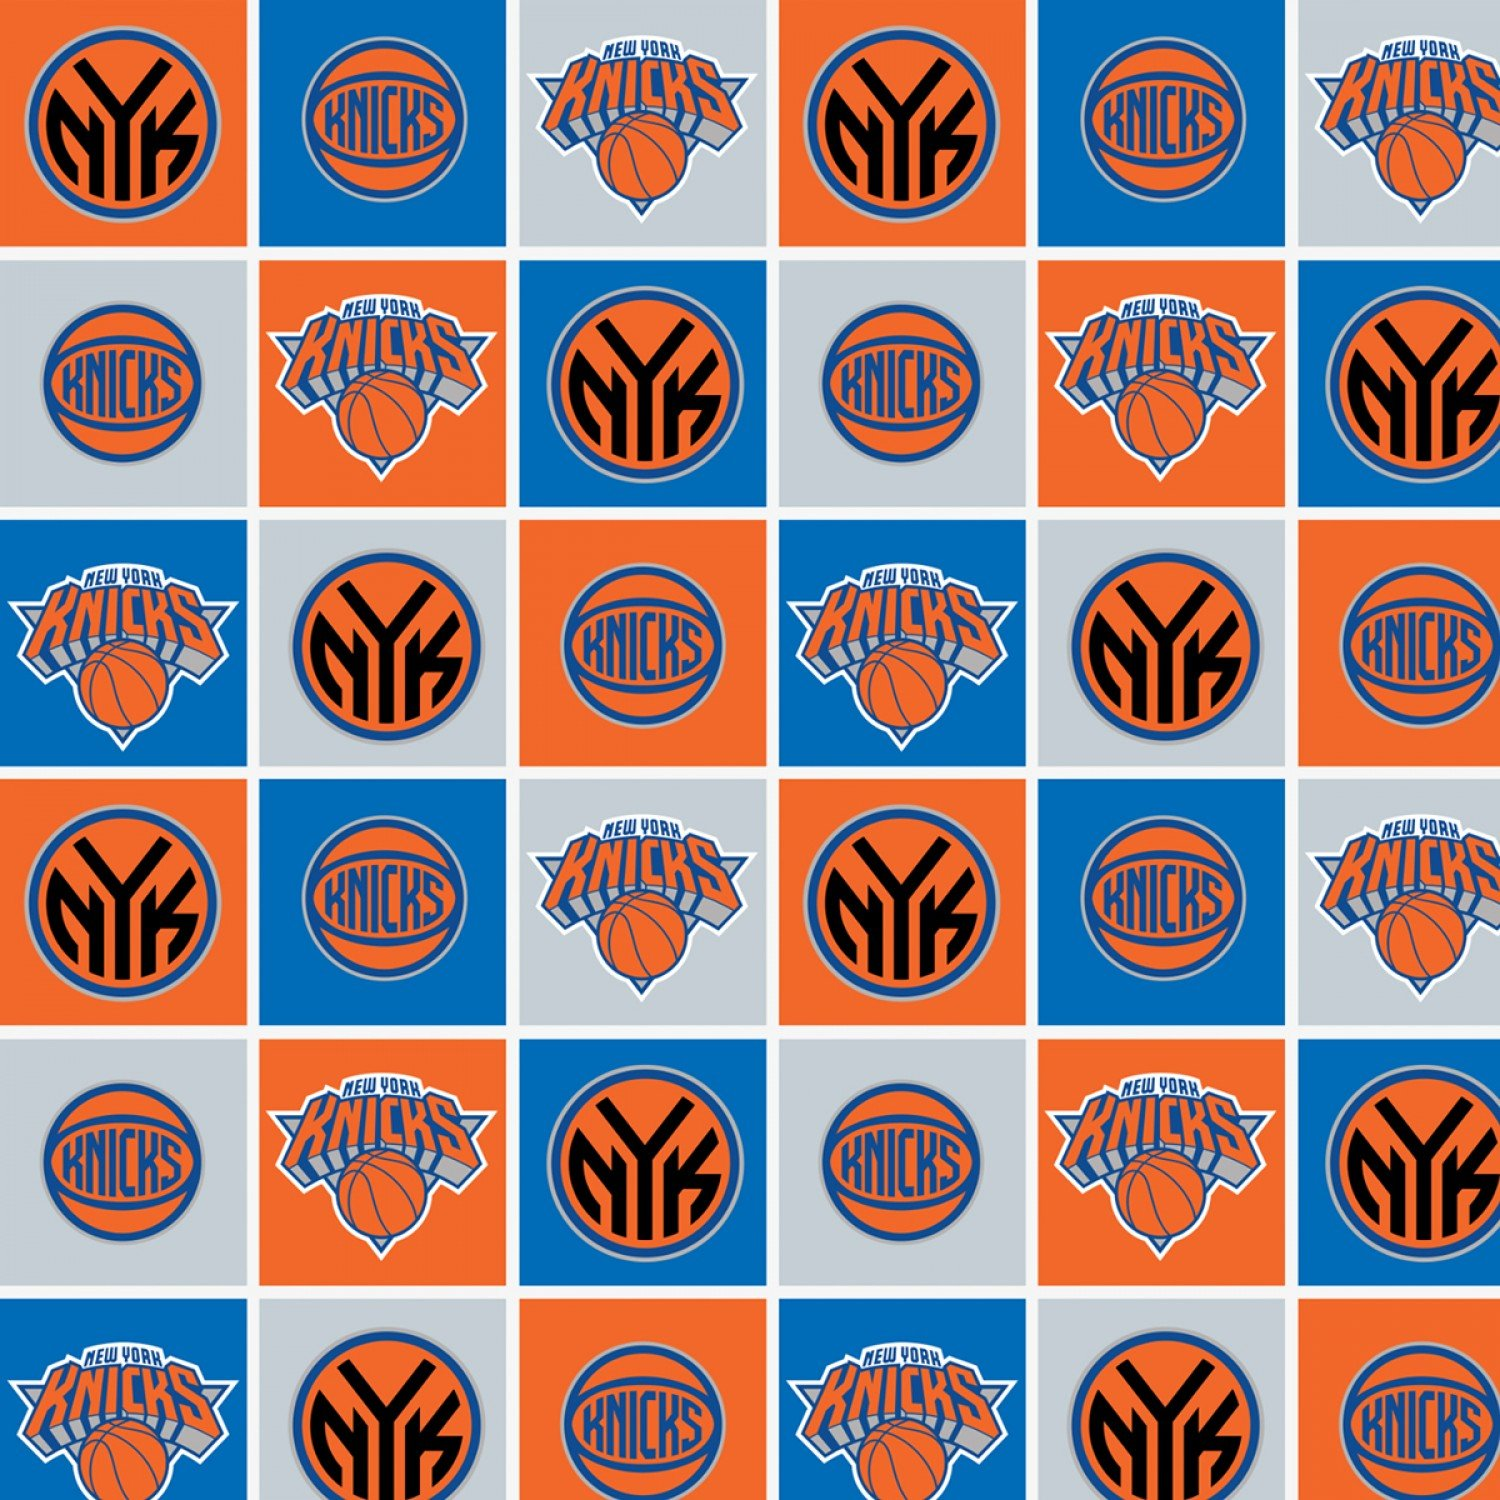 CF-NBA 83NYK0006A New York Knicks - Fleece